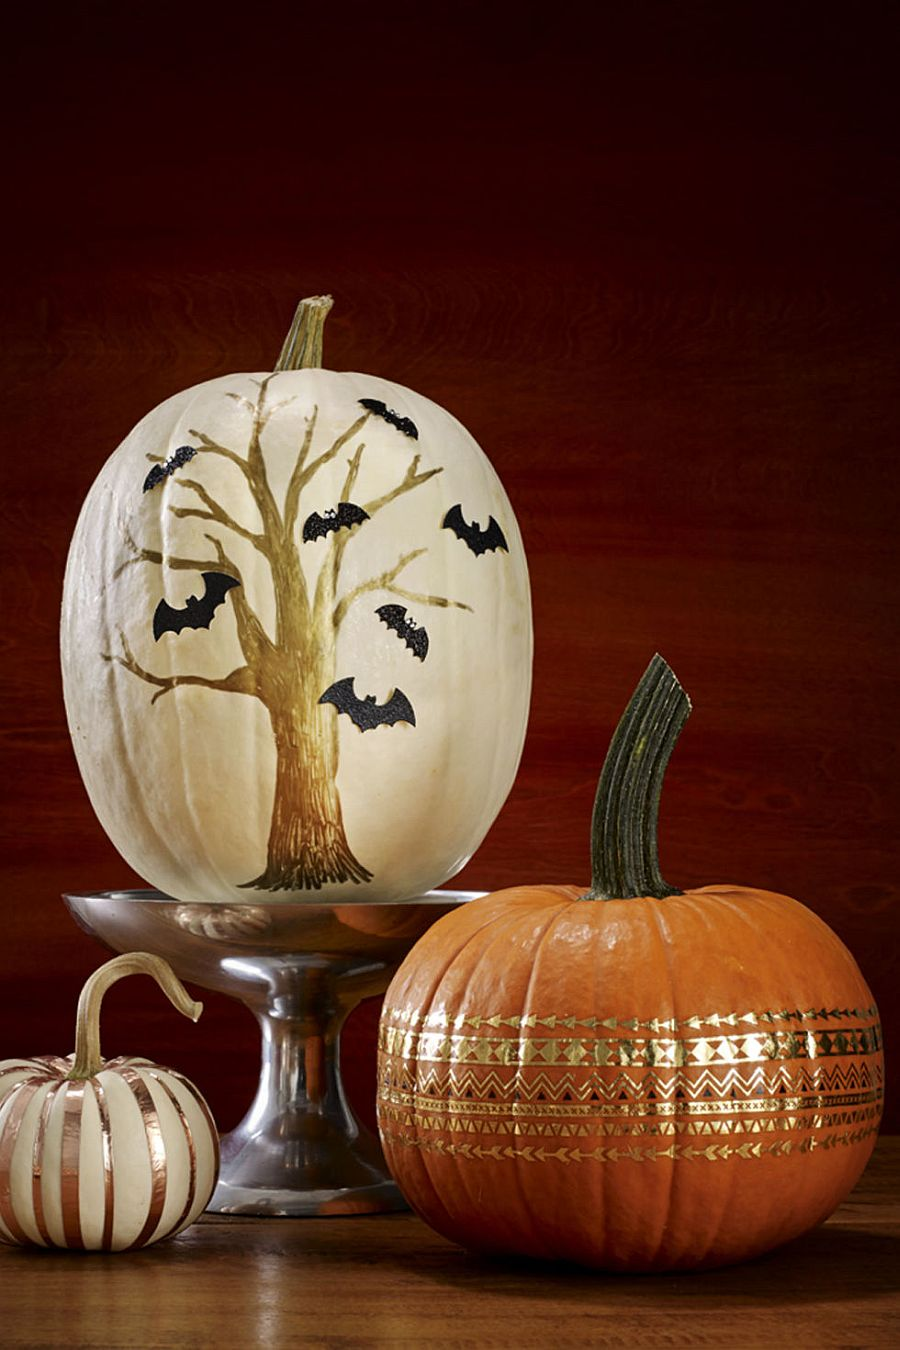 Awesome painted pumpkin ideas for halloween and beyond